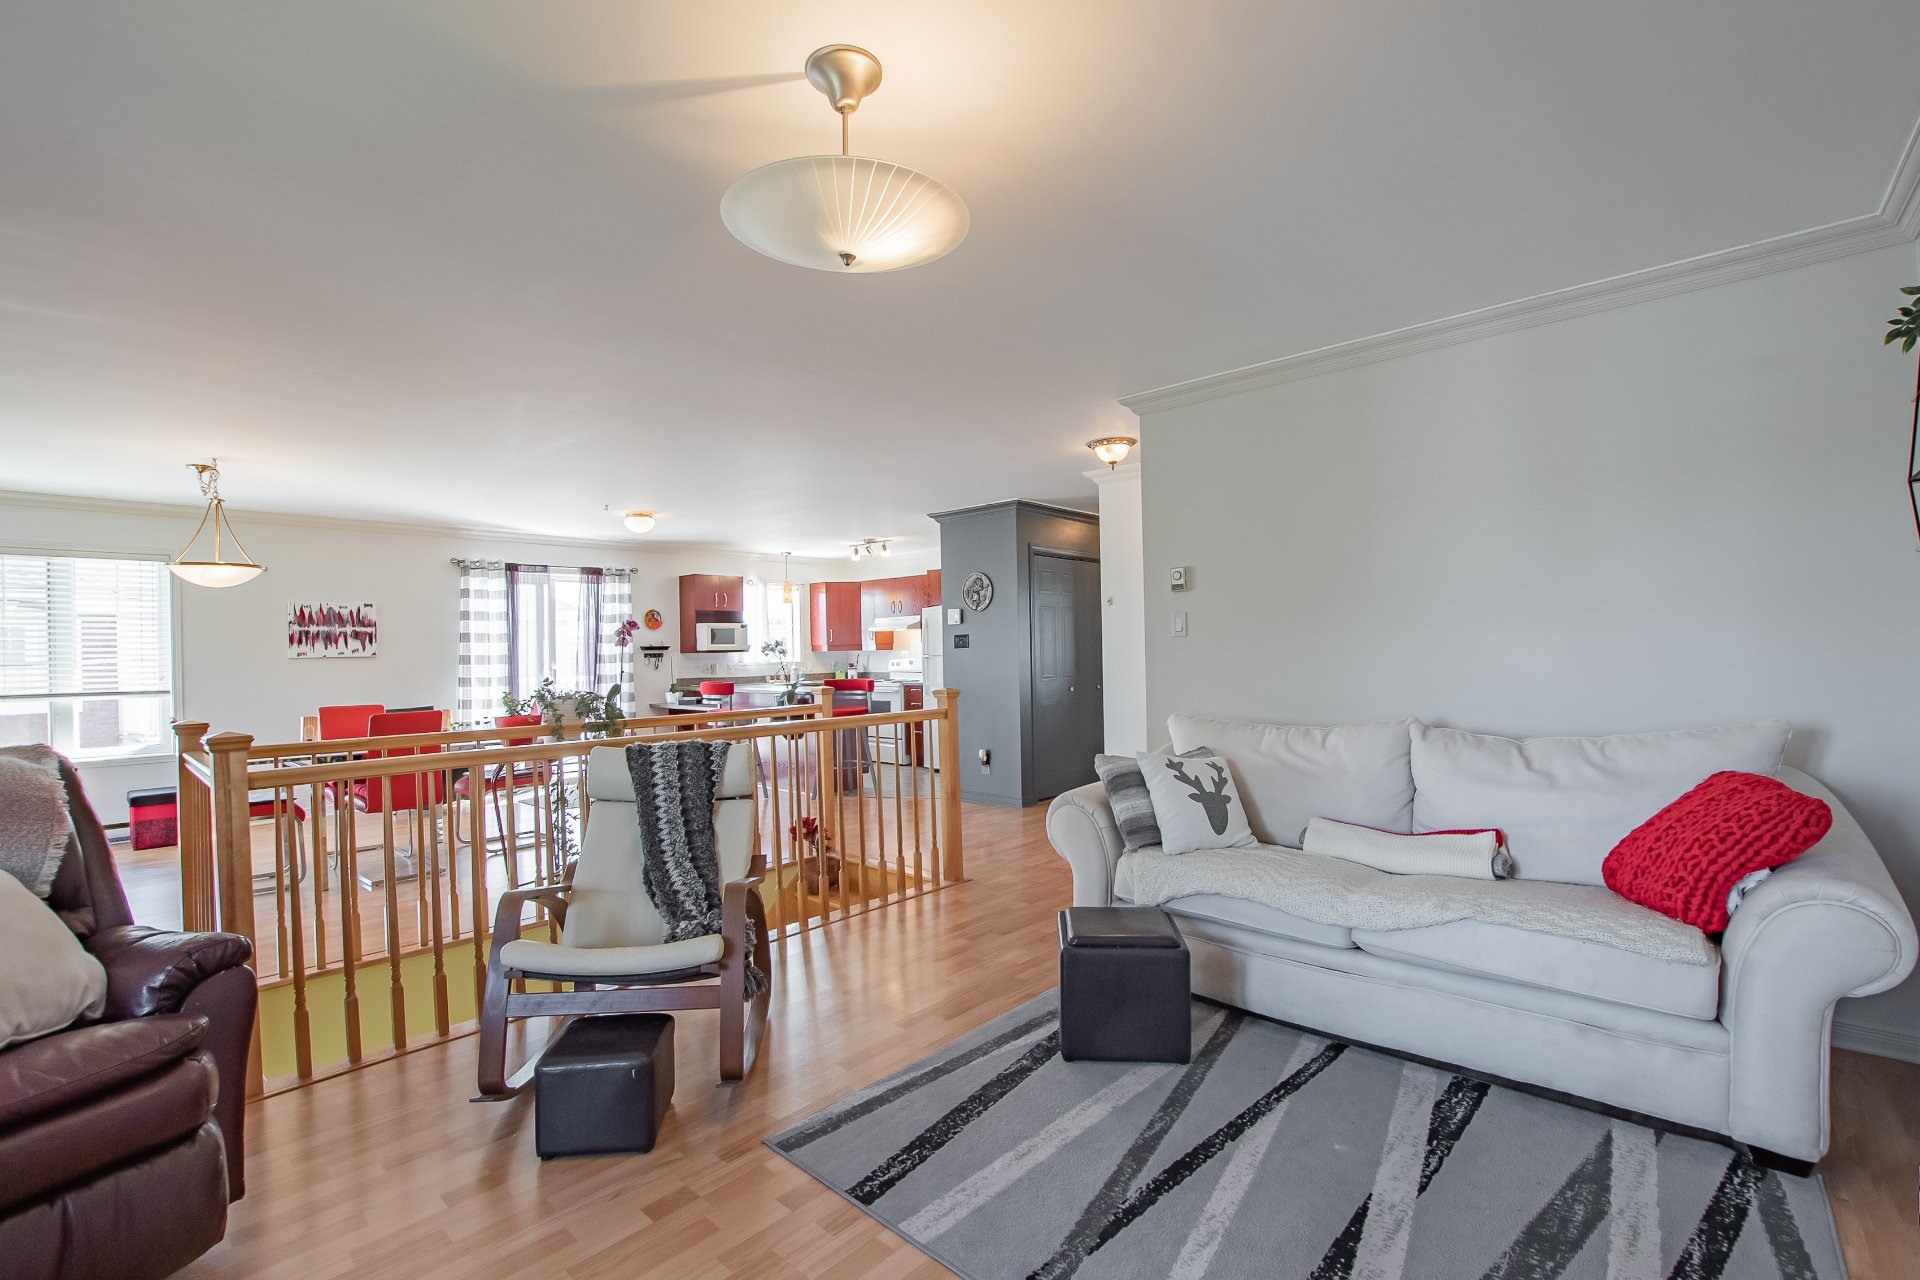 image 3 - Apartment For sale Sainte-Catherine - 5 rooms